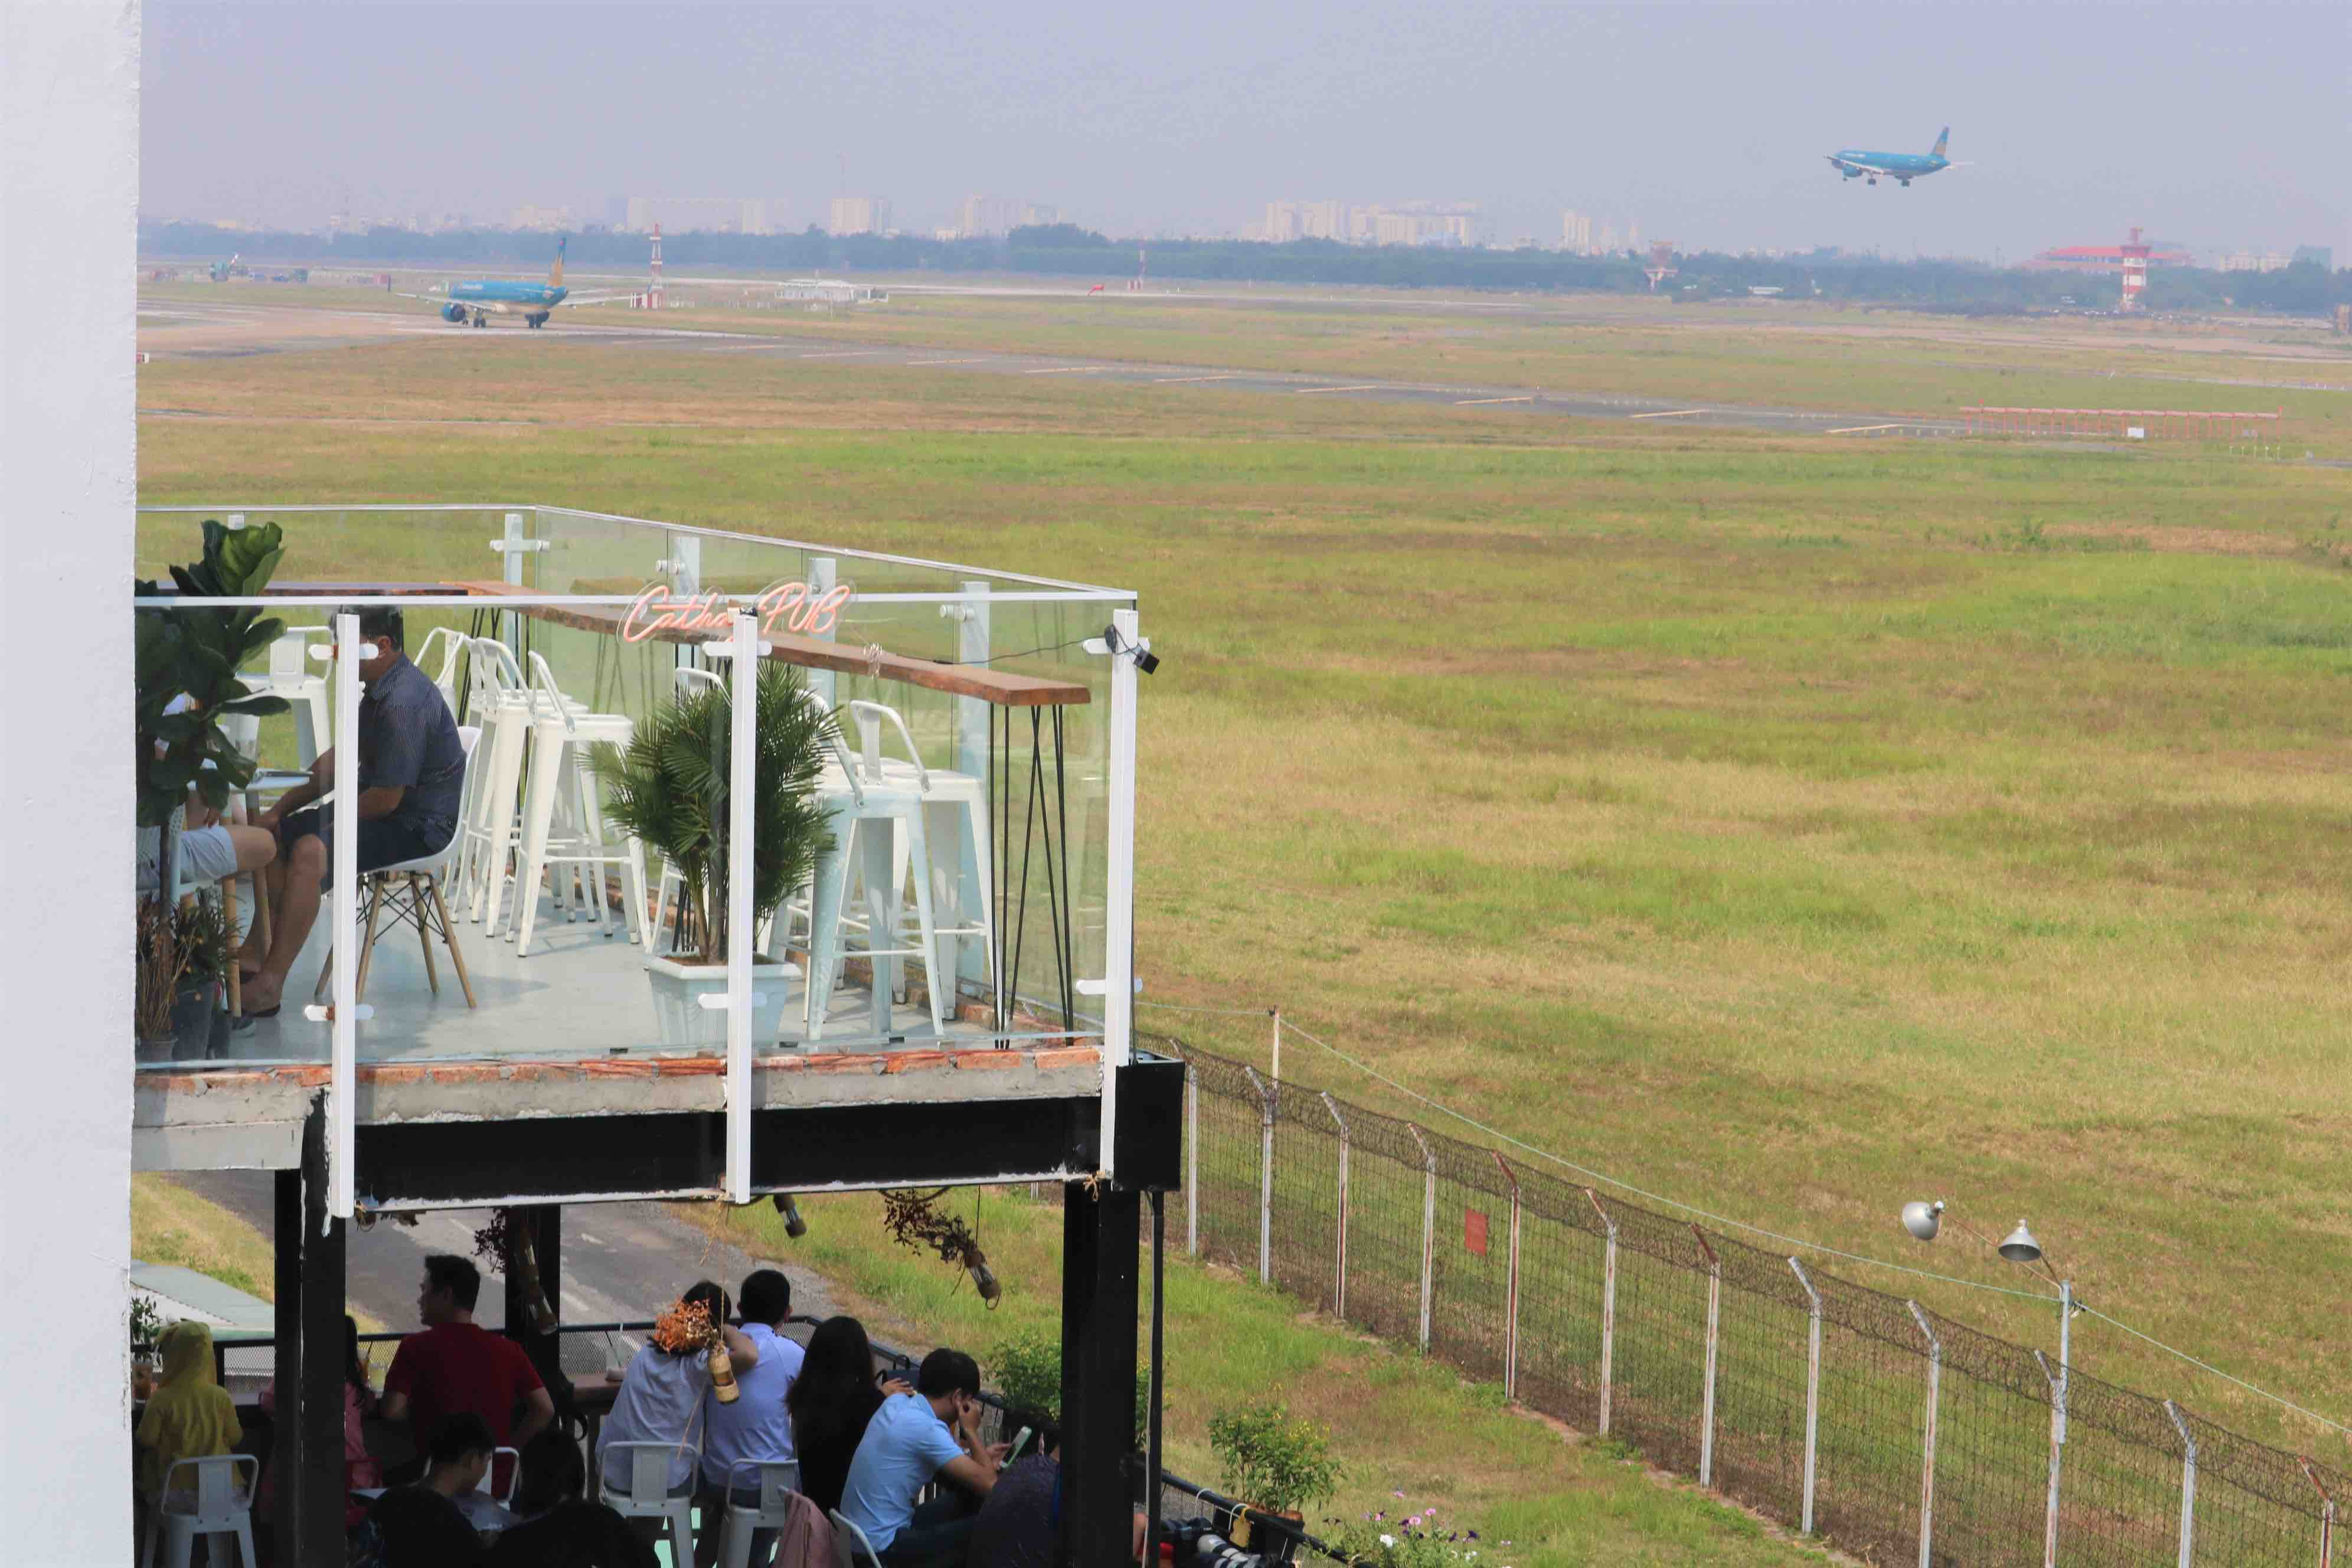 Phen's café acts as a vantage point for customers to observe planes as they land. Photo: Hoang An / Tuoi Tre